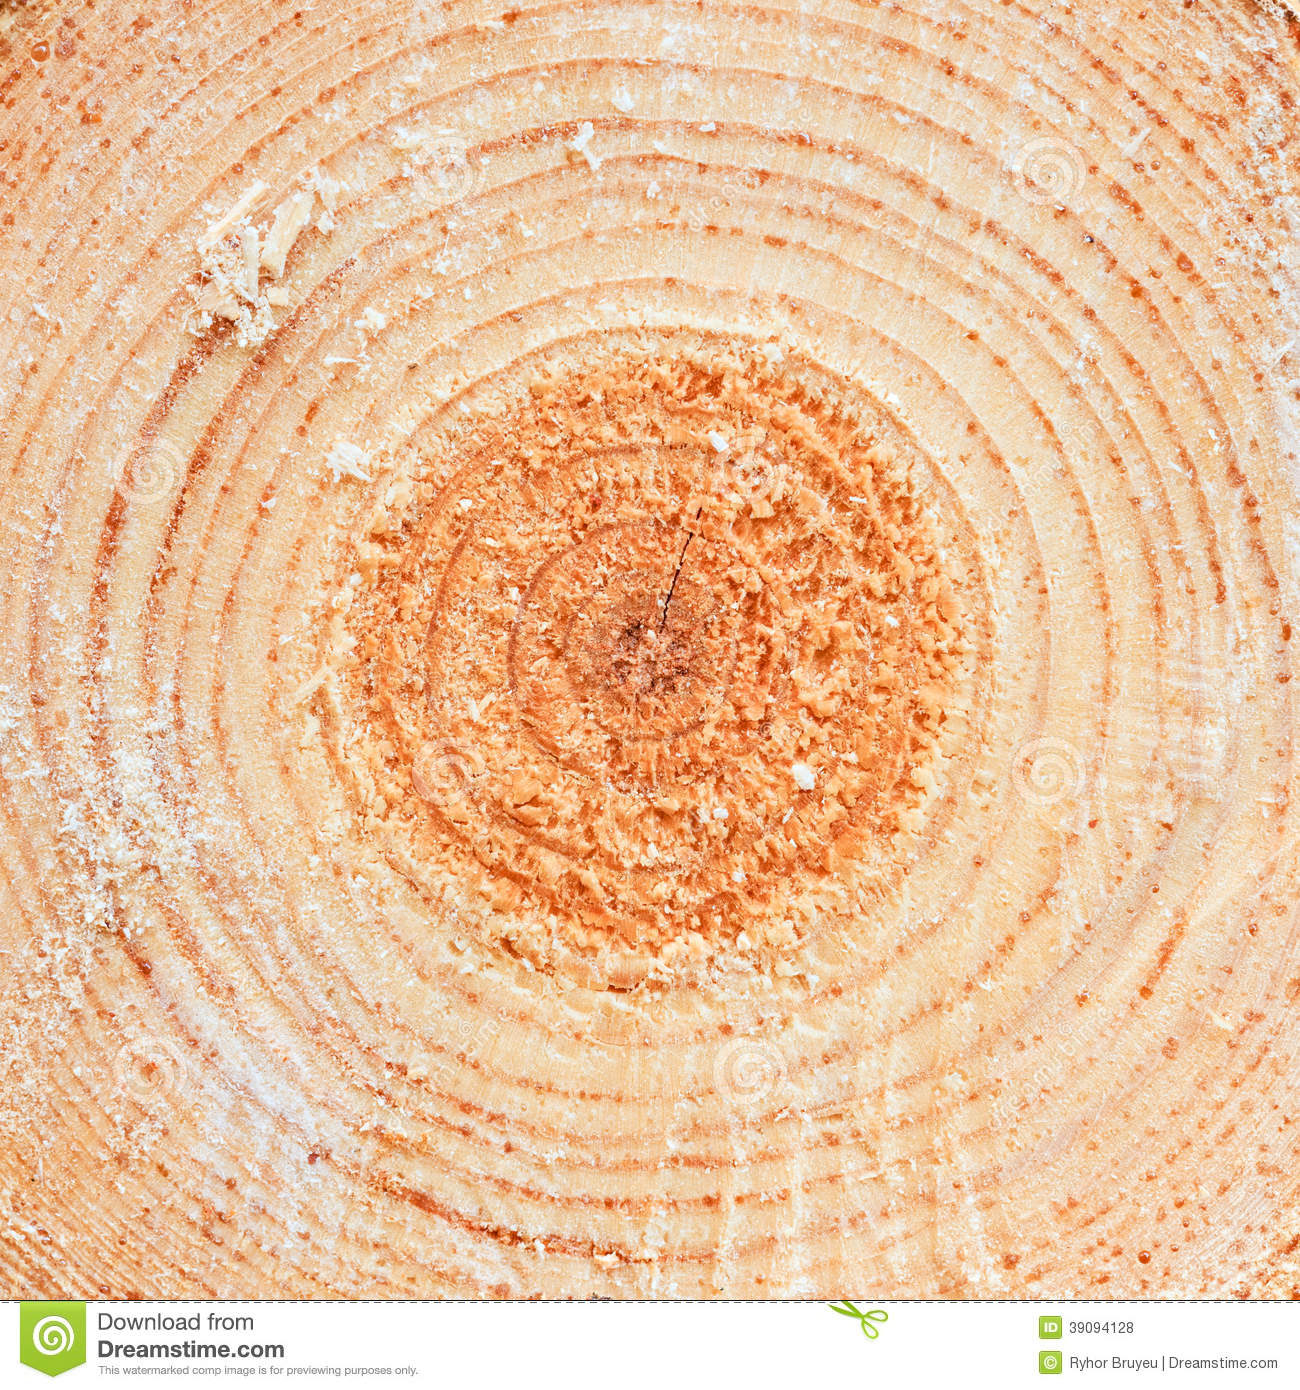 Annual rings on sawn pine tree timber wood stock photo Pine tree timber